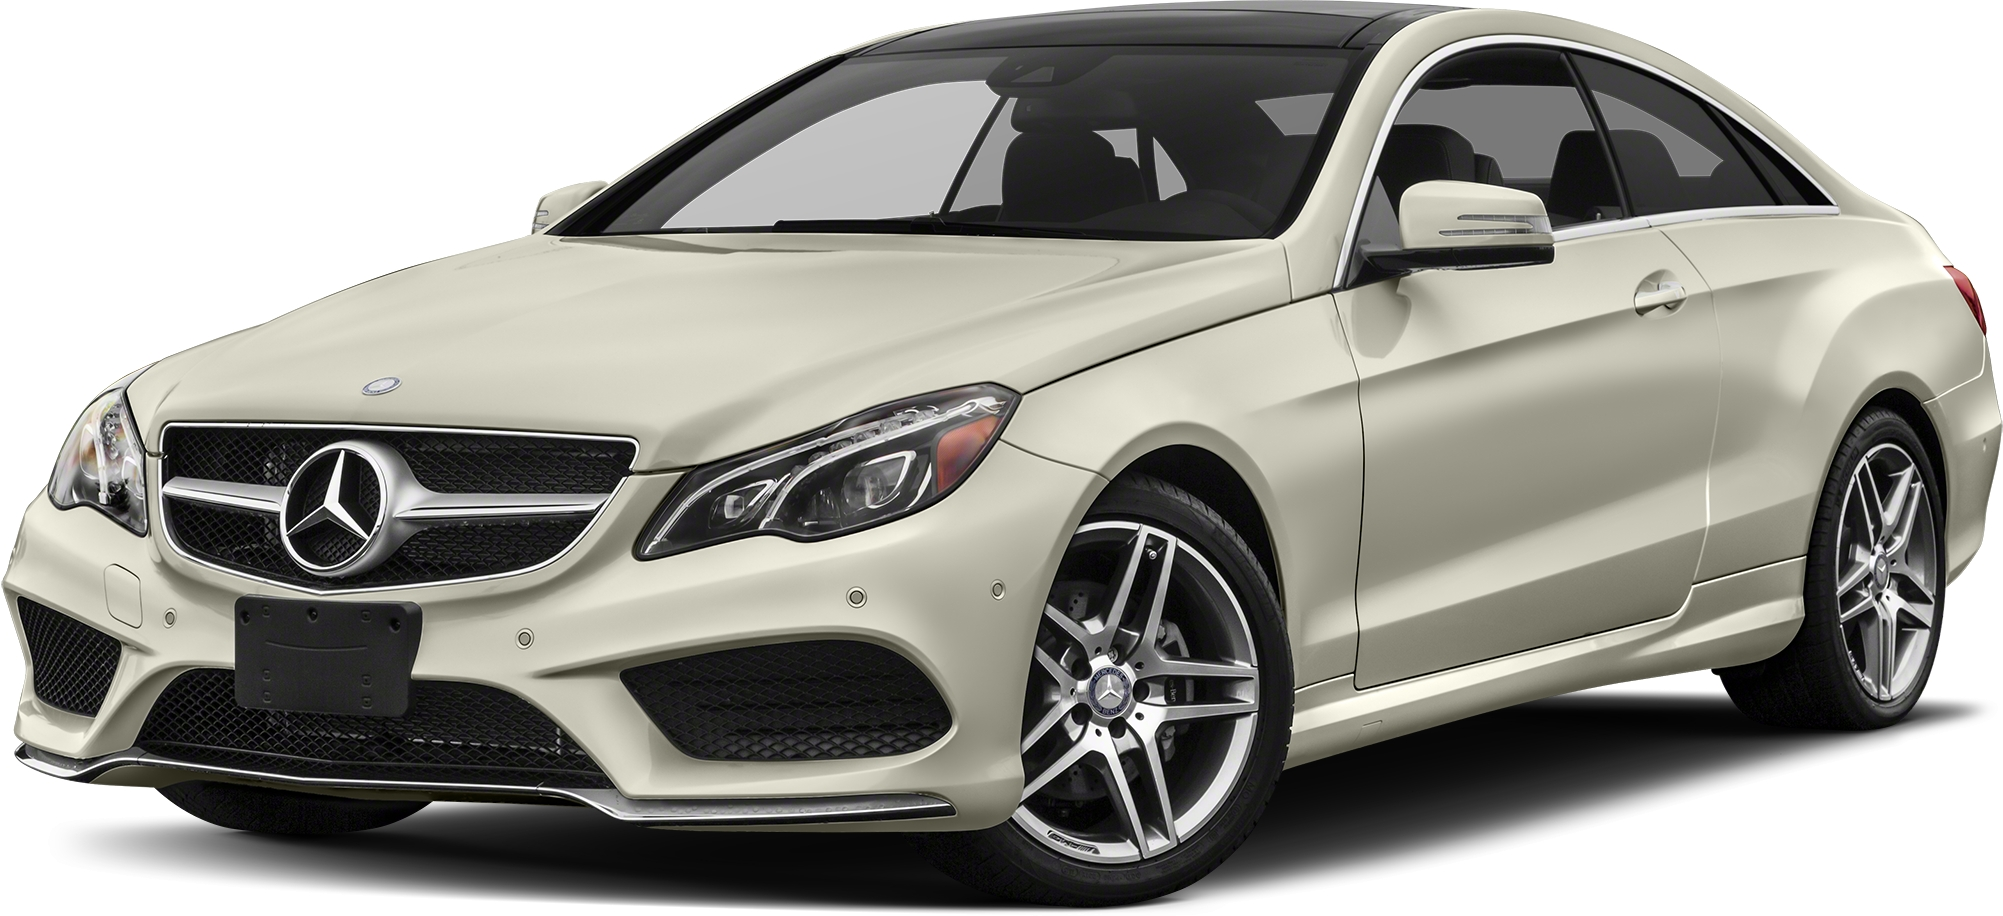 2017 mercedes benz e 400 4matic coupe white plains ny for Mercedes benz college graduate program